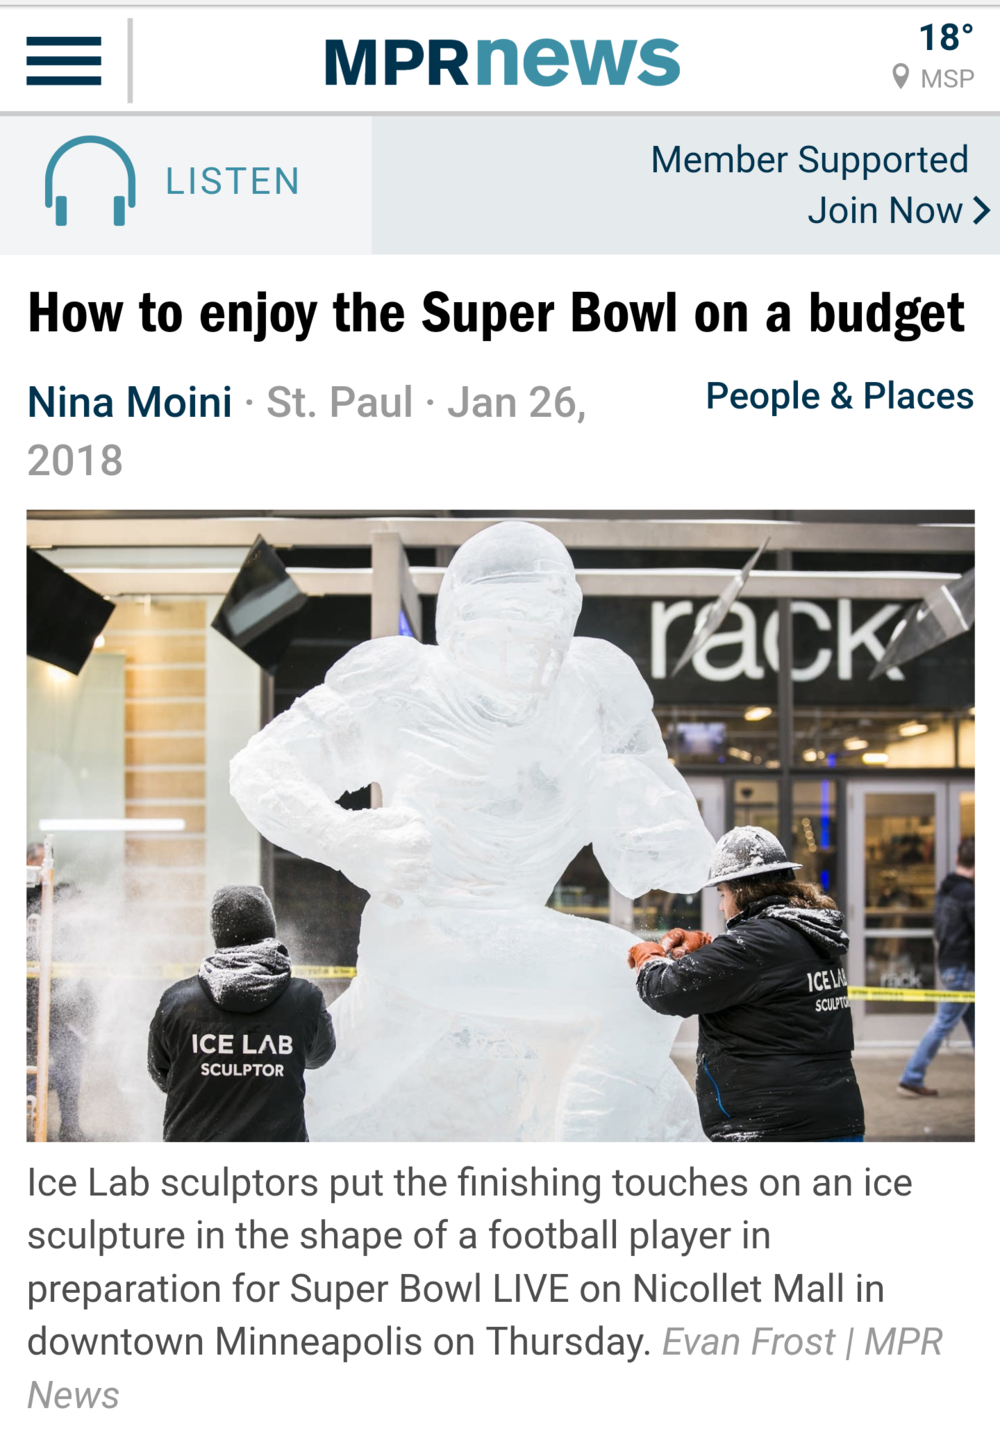 Official Super Bowl Ice Sculptors